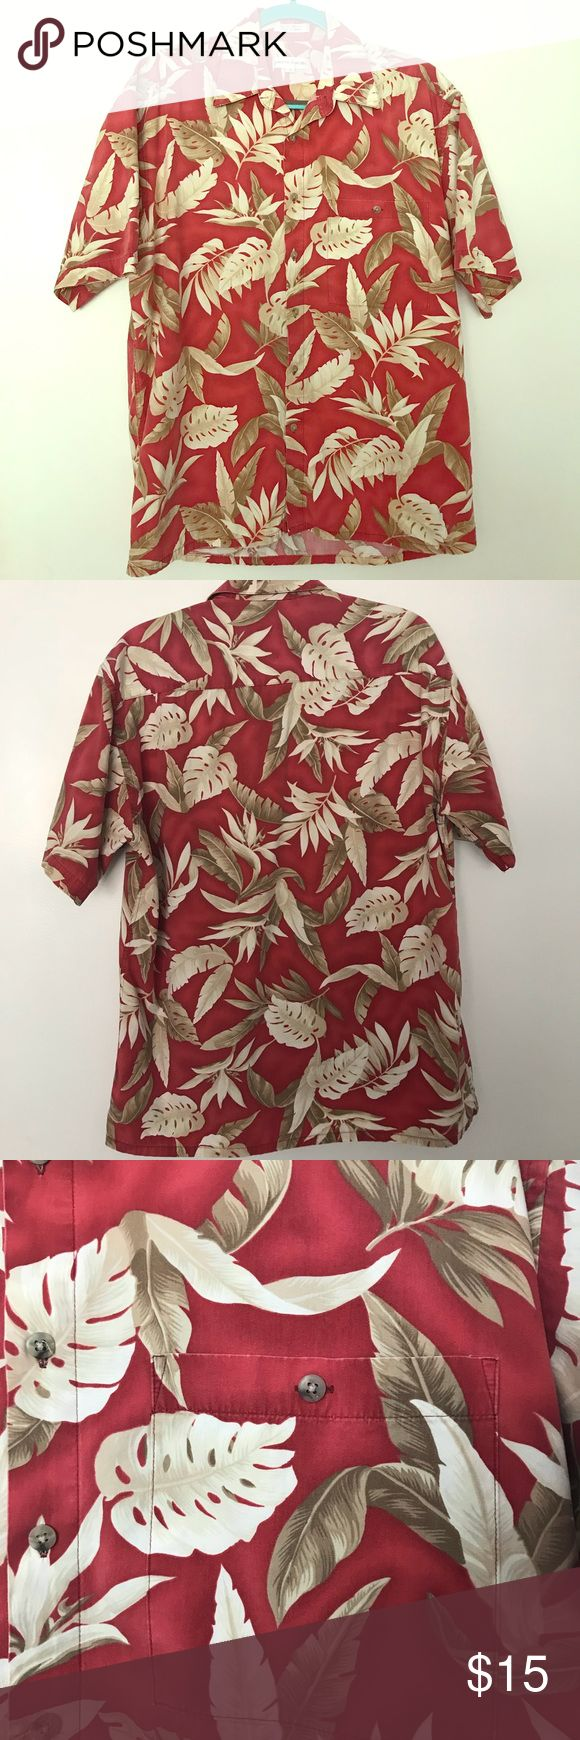 """Pierre Cardin Tropical Short Sleeve Shirt Pierre Cardin Tropical Short Sleeve Shirt. 100% cotton, button up. Orange/tan/taupe/brown. Chest 24"""" across and length is 28"""". Good condition. Pierre Cardin Shirts Casual Button Down Shirts"""